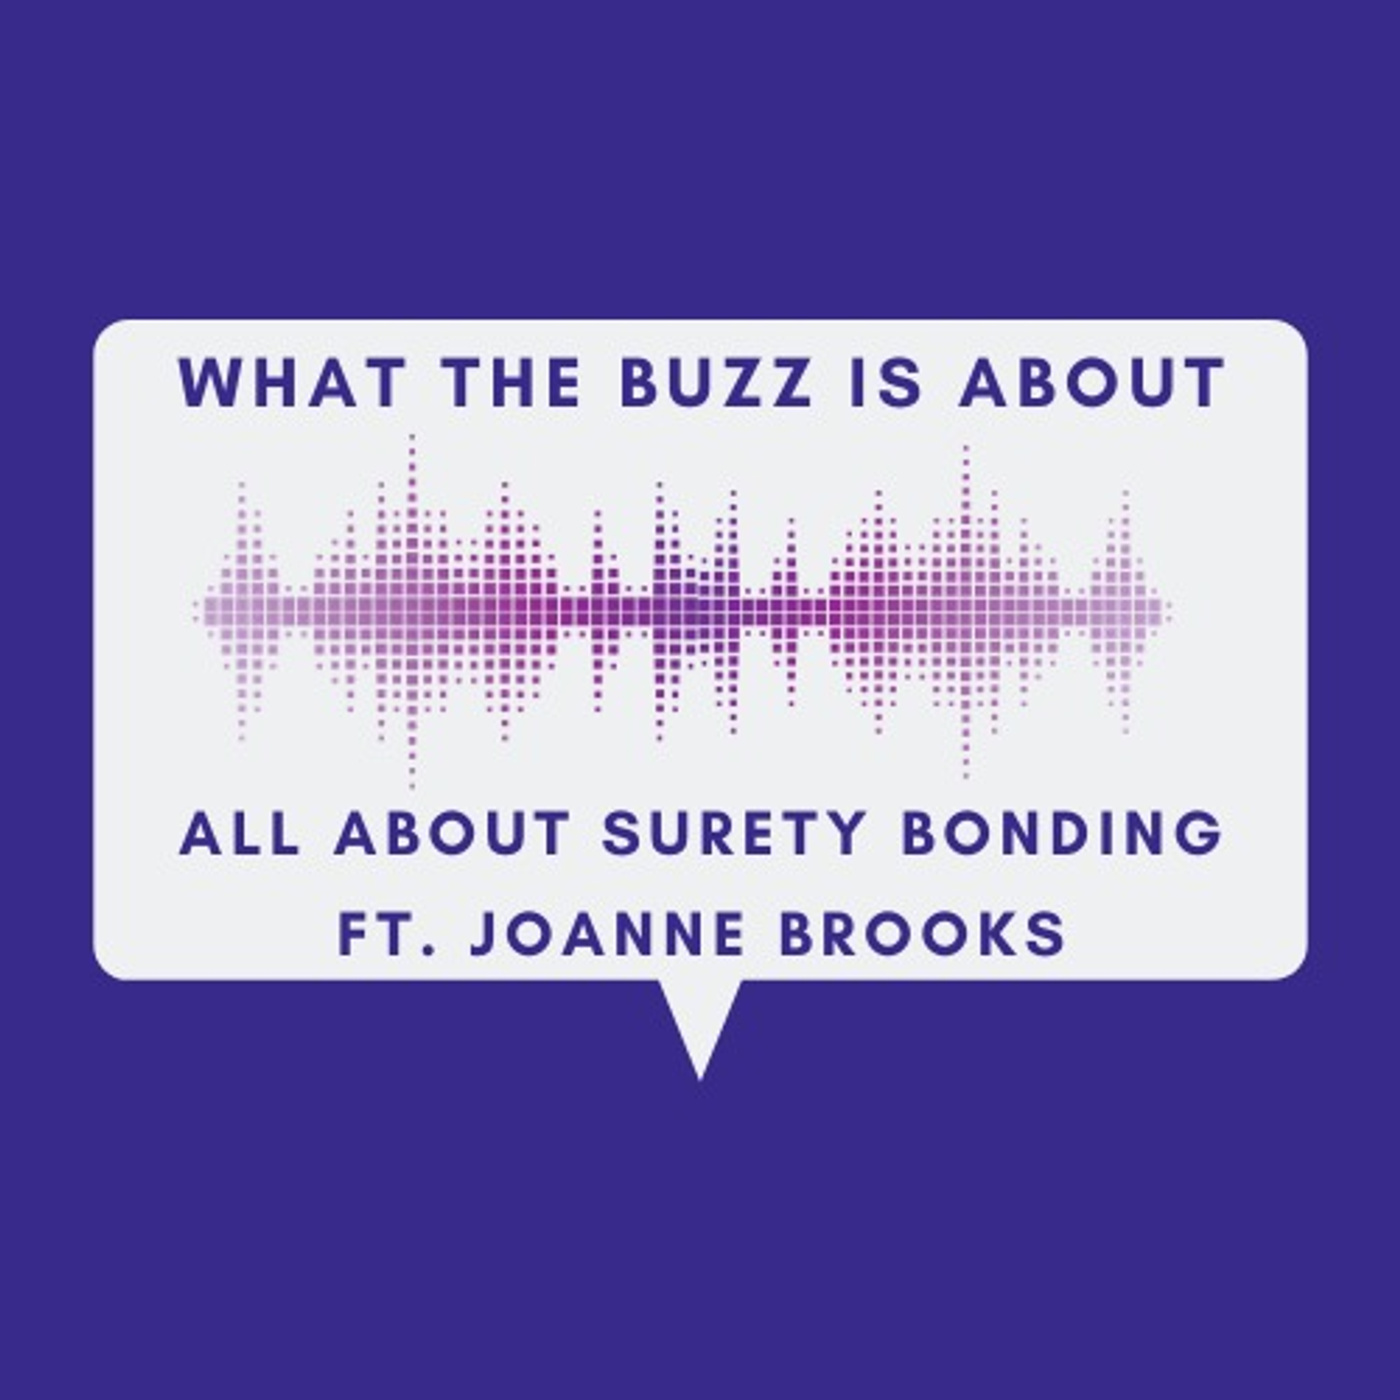 All About Surety Bonding with JoAnne Brooks